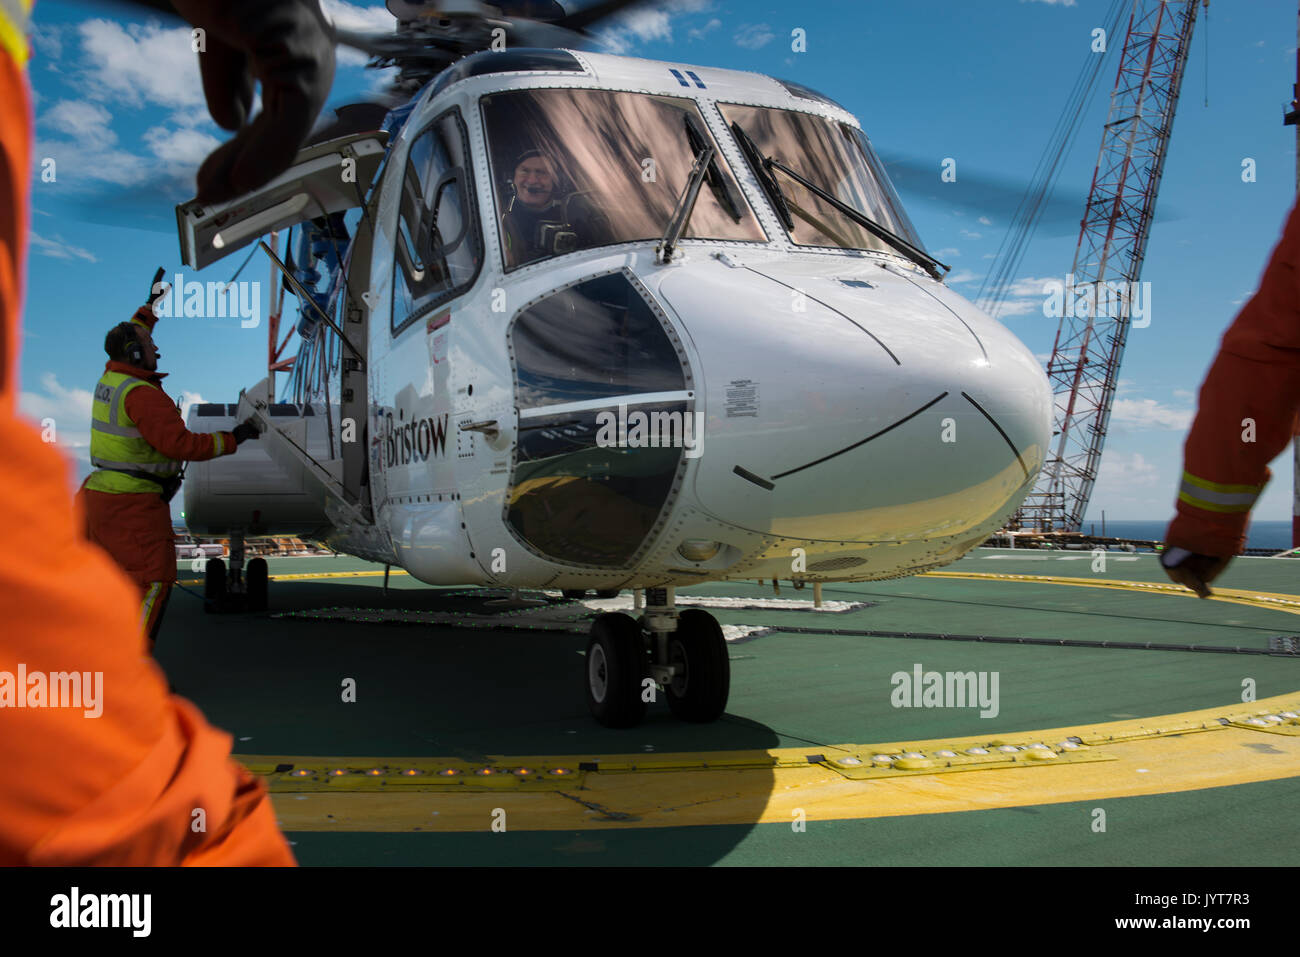 Bristow Helicopter, landing on a north sea oil and gas platform. Helideck team, credit: LEE RAMSDEN / ALAMY - Stock Image